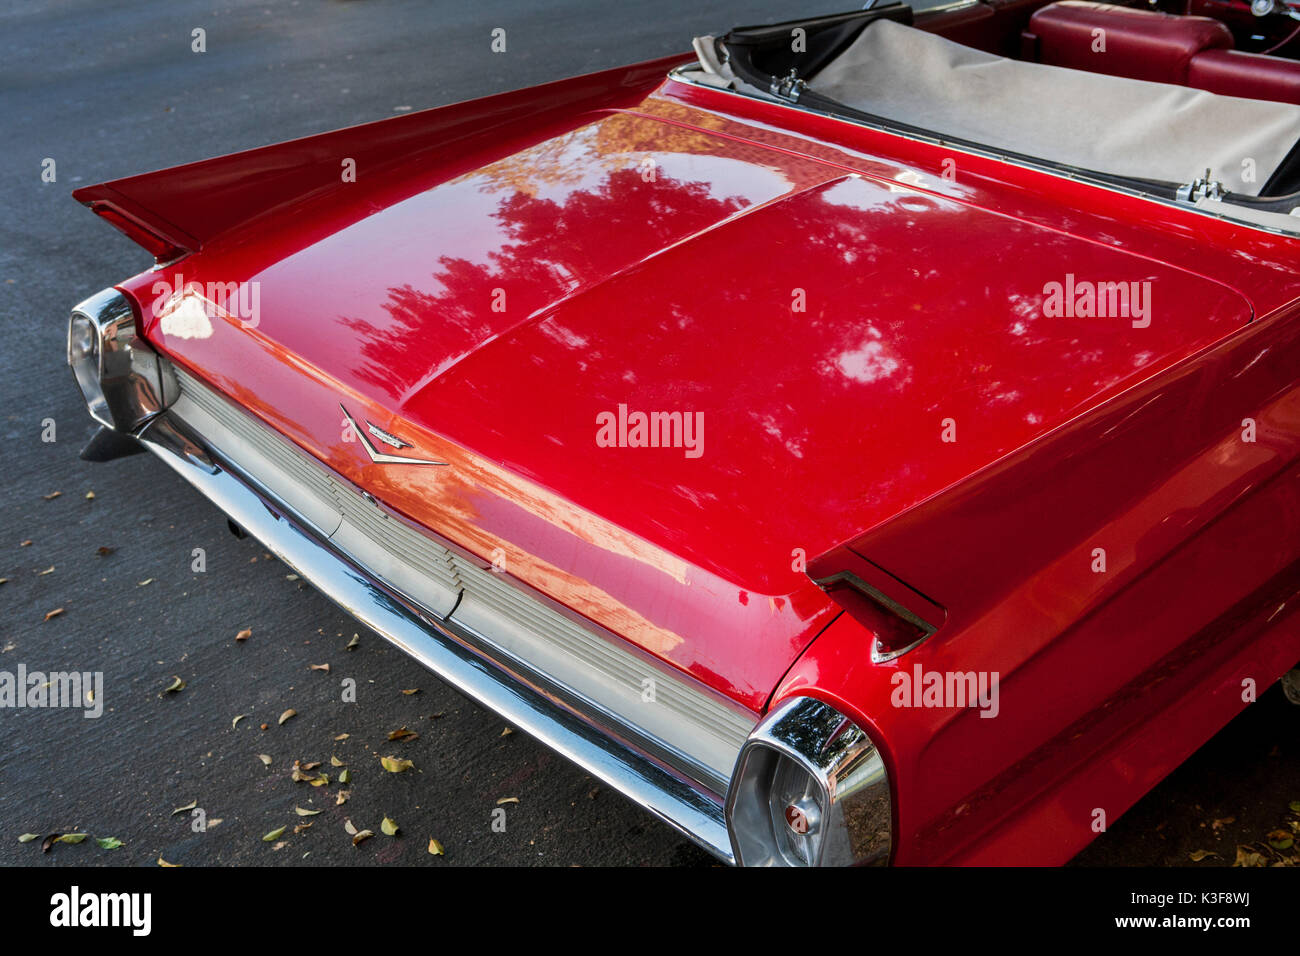 Trunk of Old Cadillac Convertible Car - Stock Image